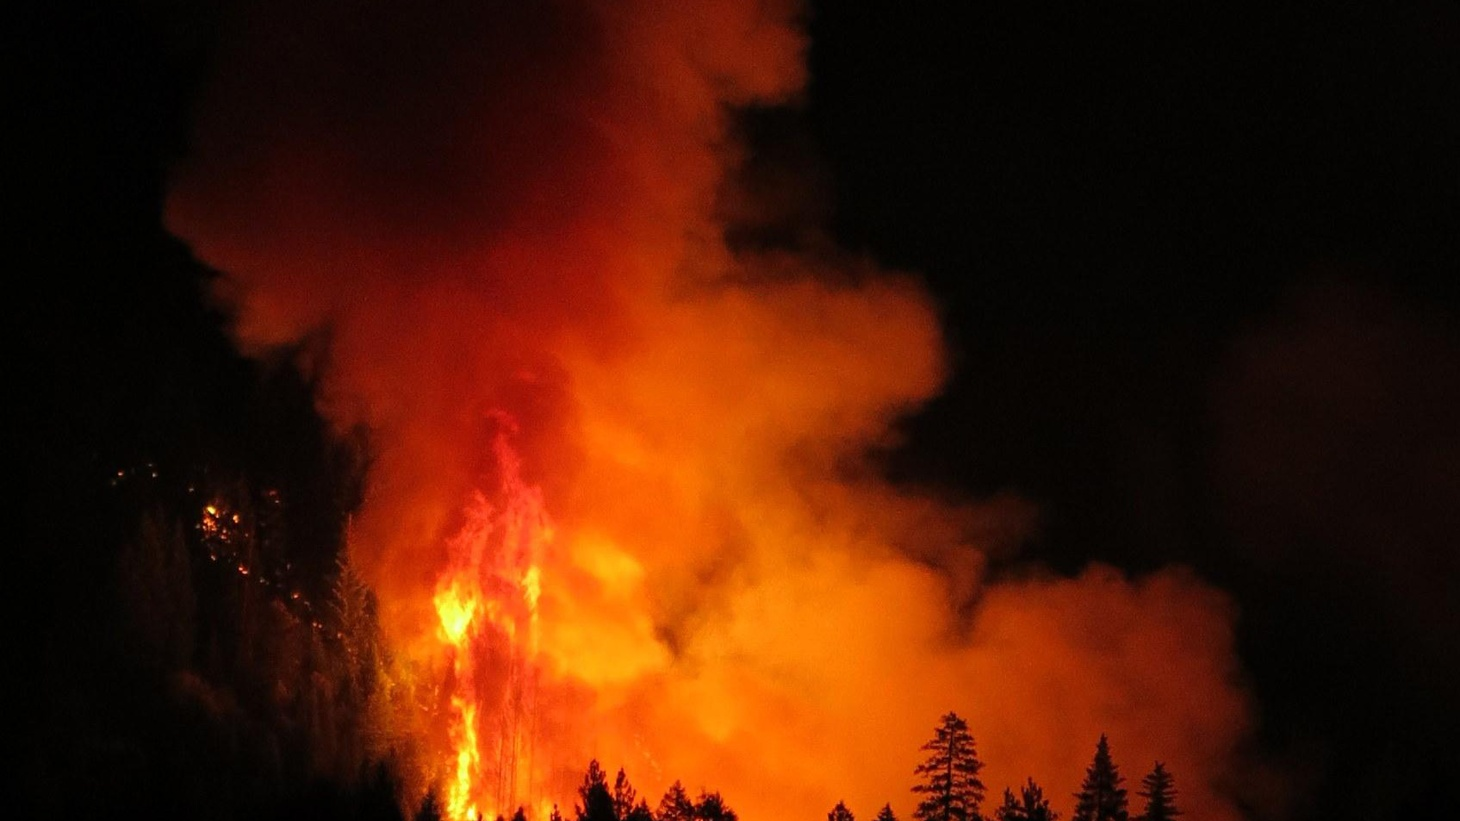 Wildfire season is in full swing, and a pilot died yesterday while fighting a wildfire near Yosemite National Park. Are our fire prevention techniques up-to-date?